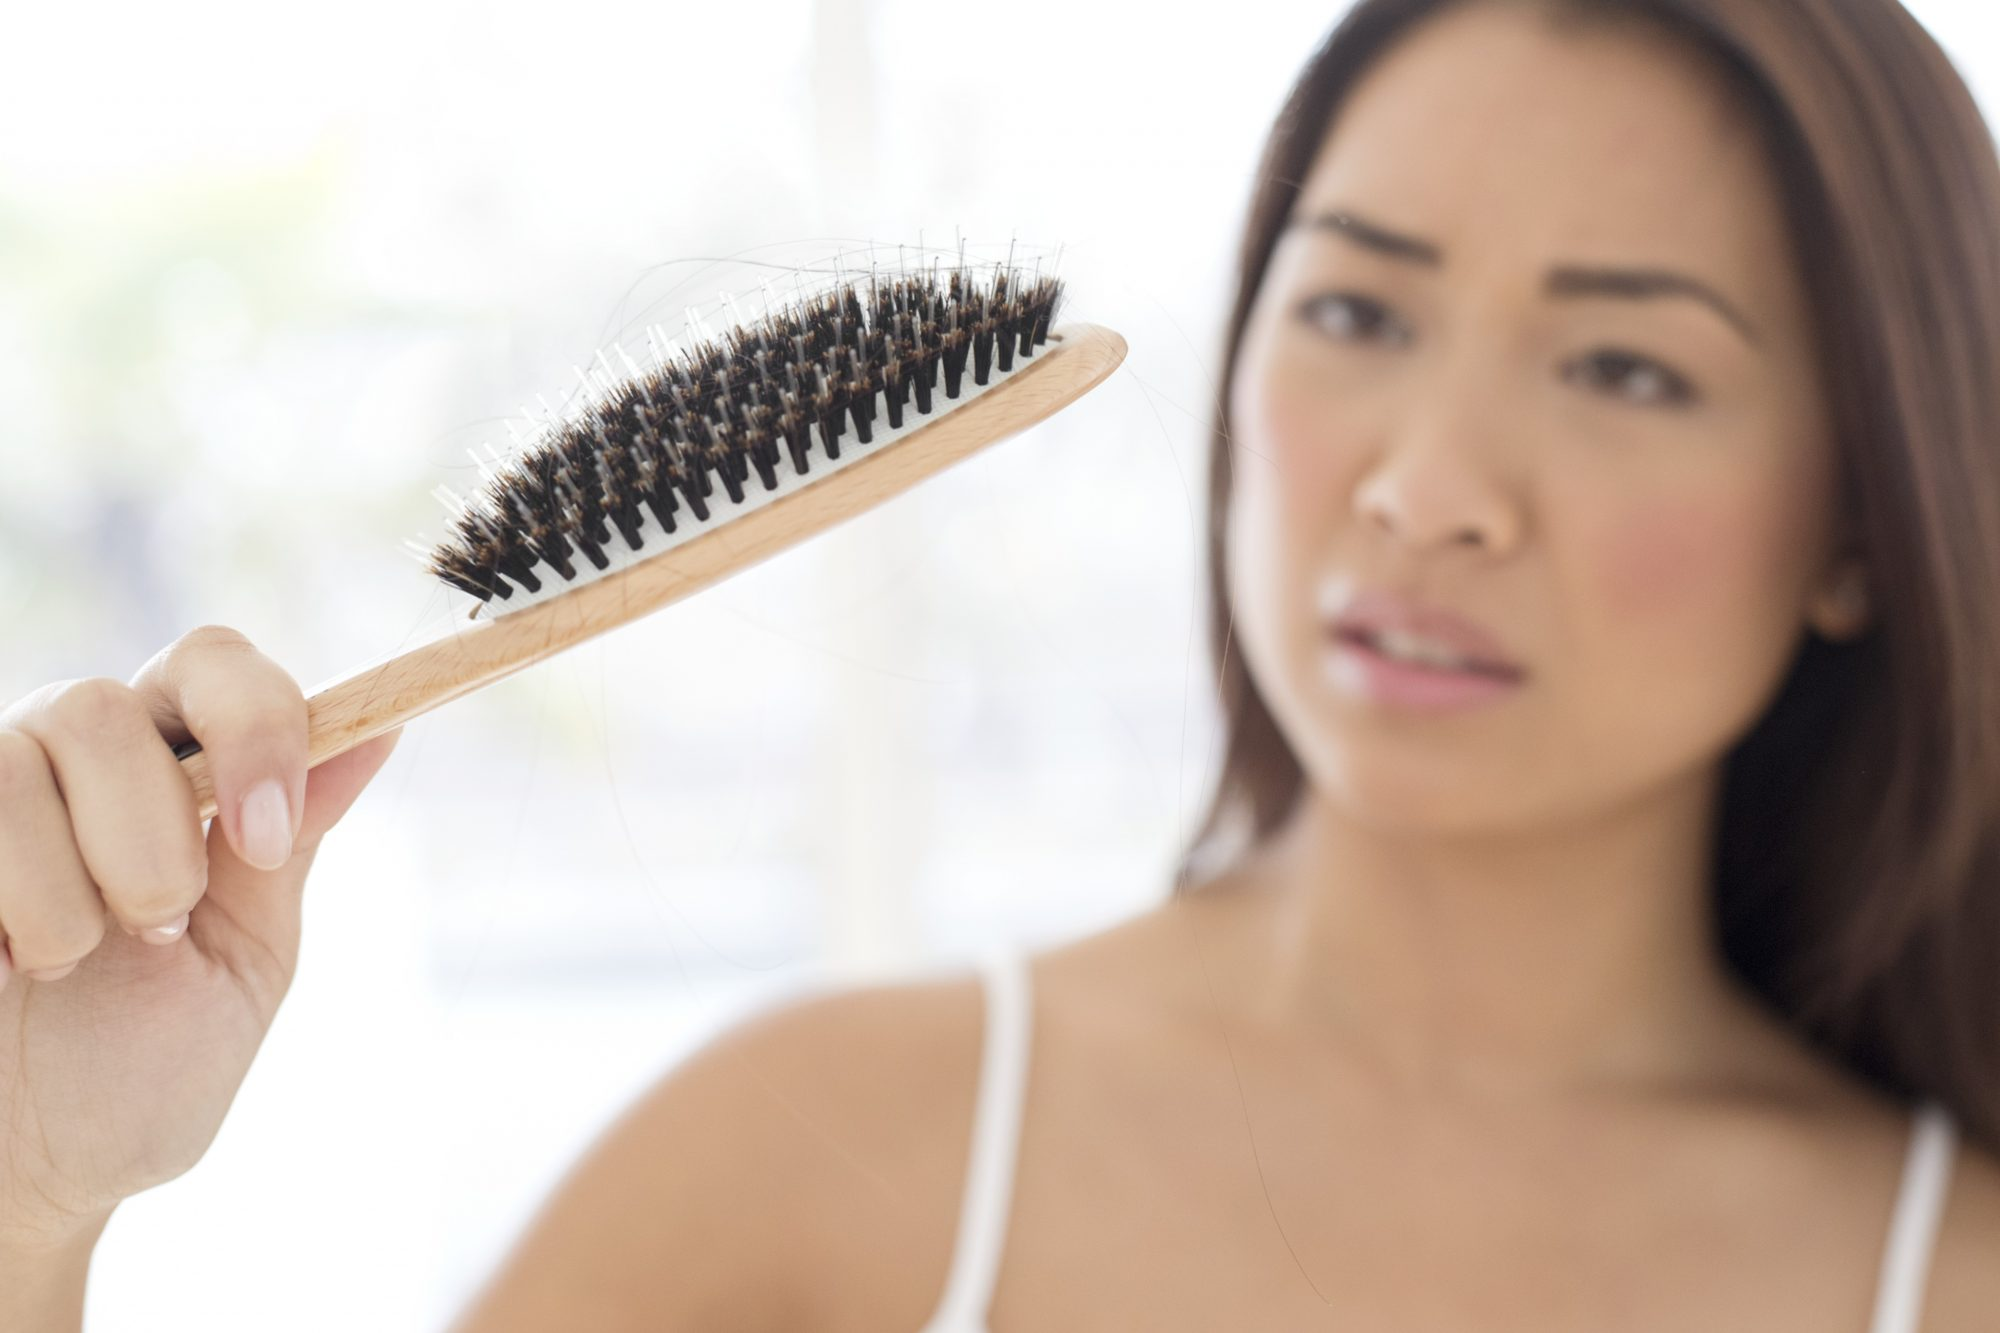 Woman Losing Hair in Brush